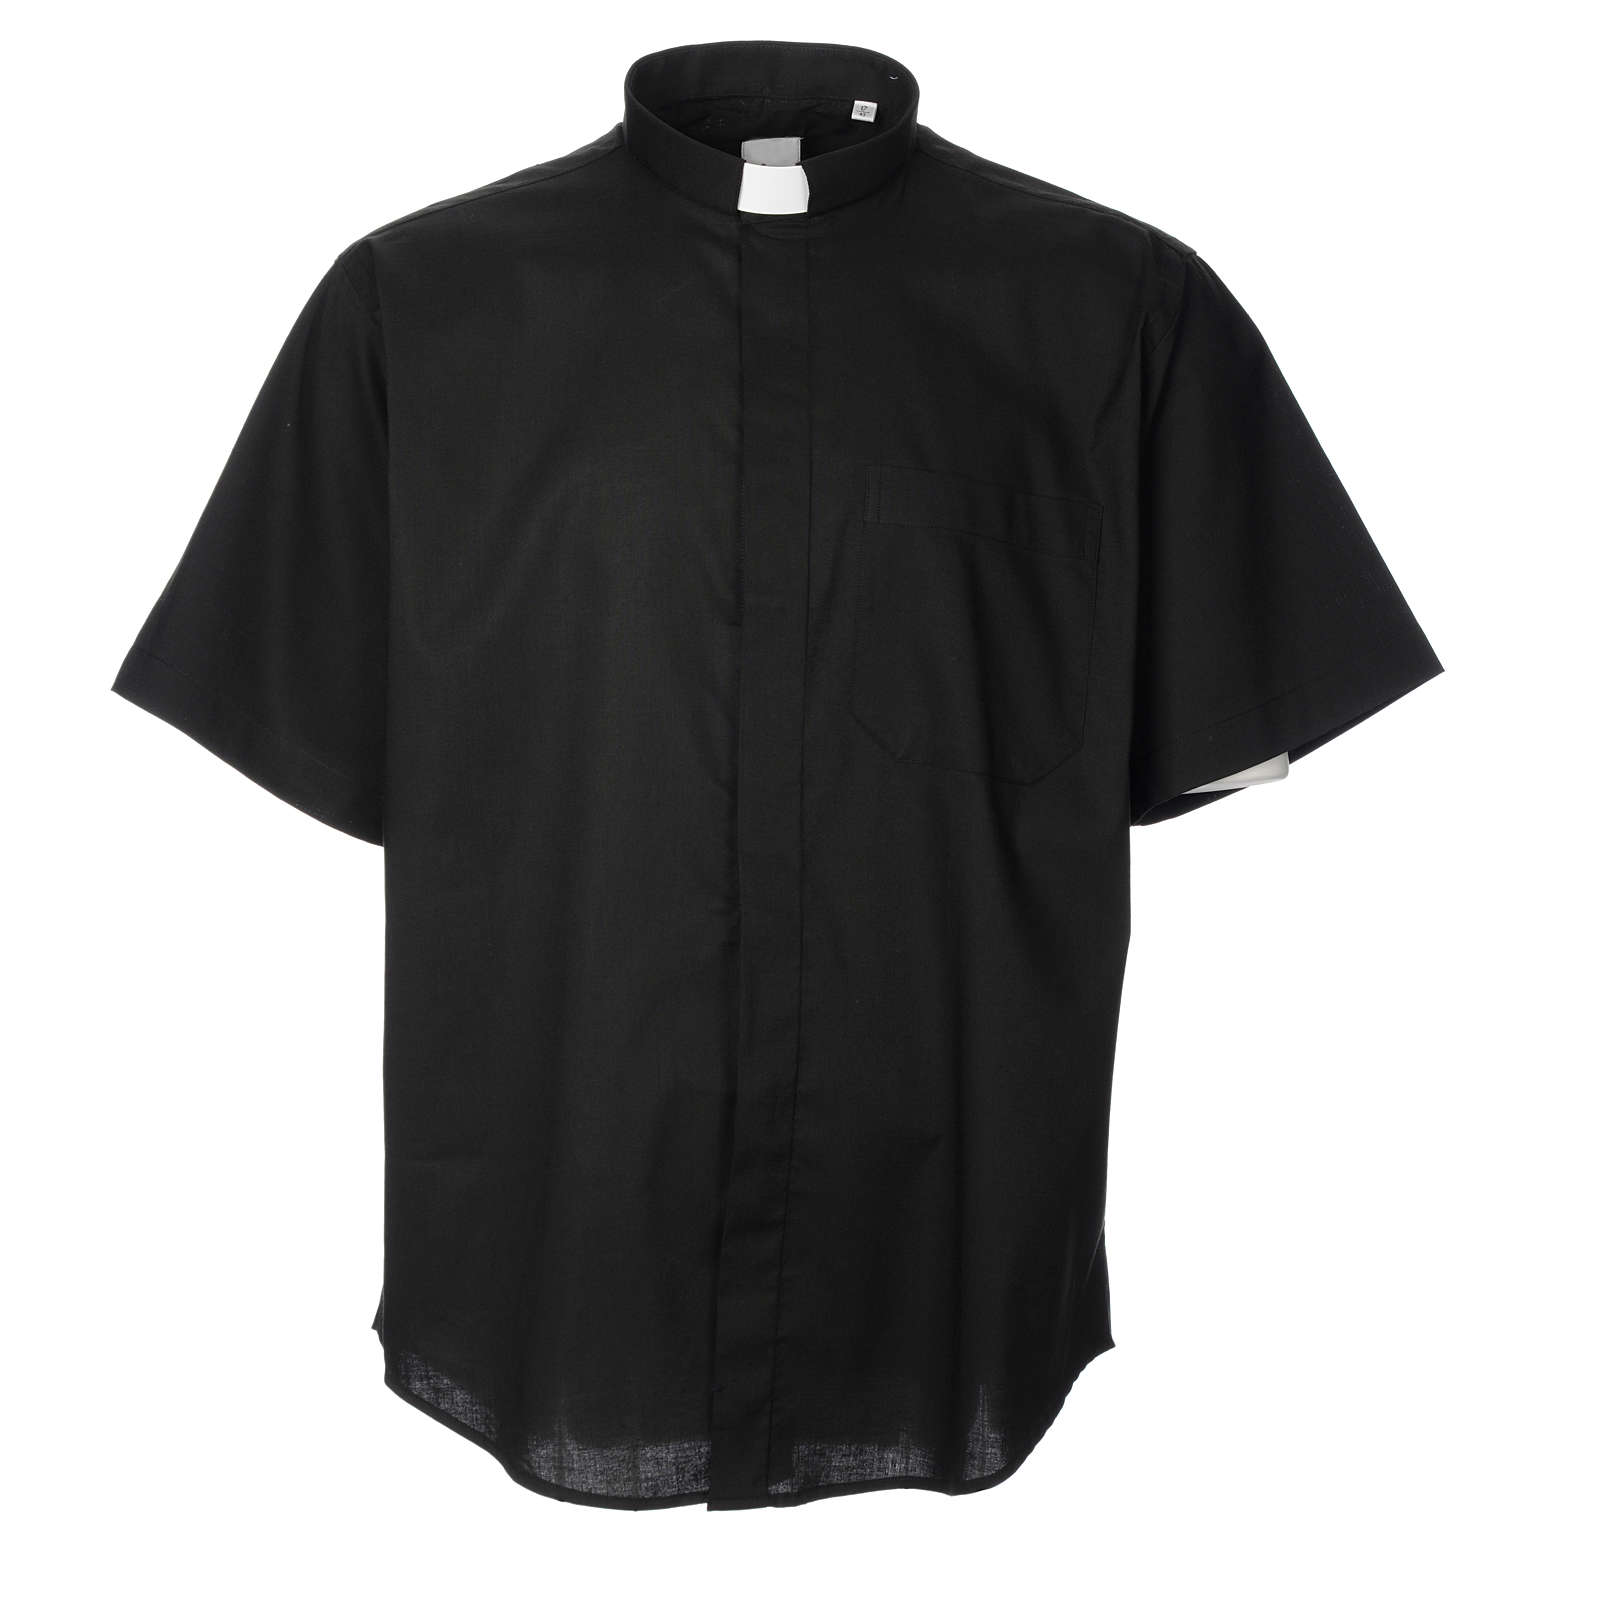 STOCK Clergy shirt, short sleeves in black poly cotton 4